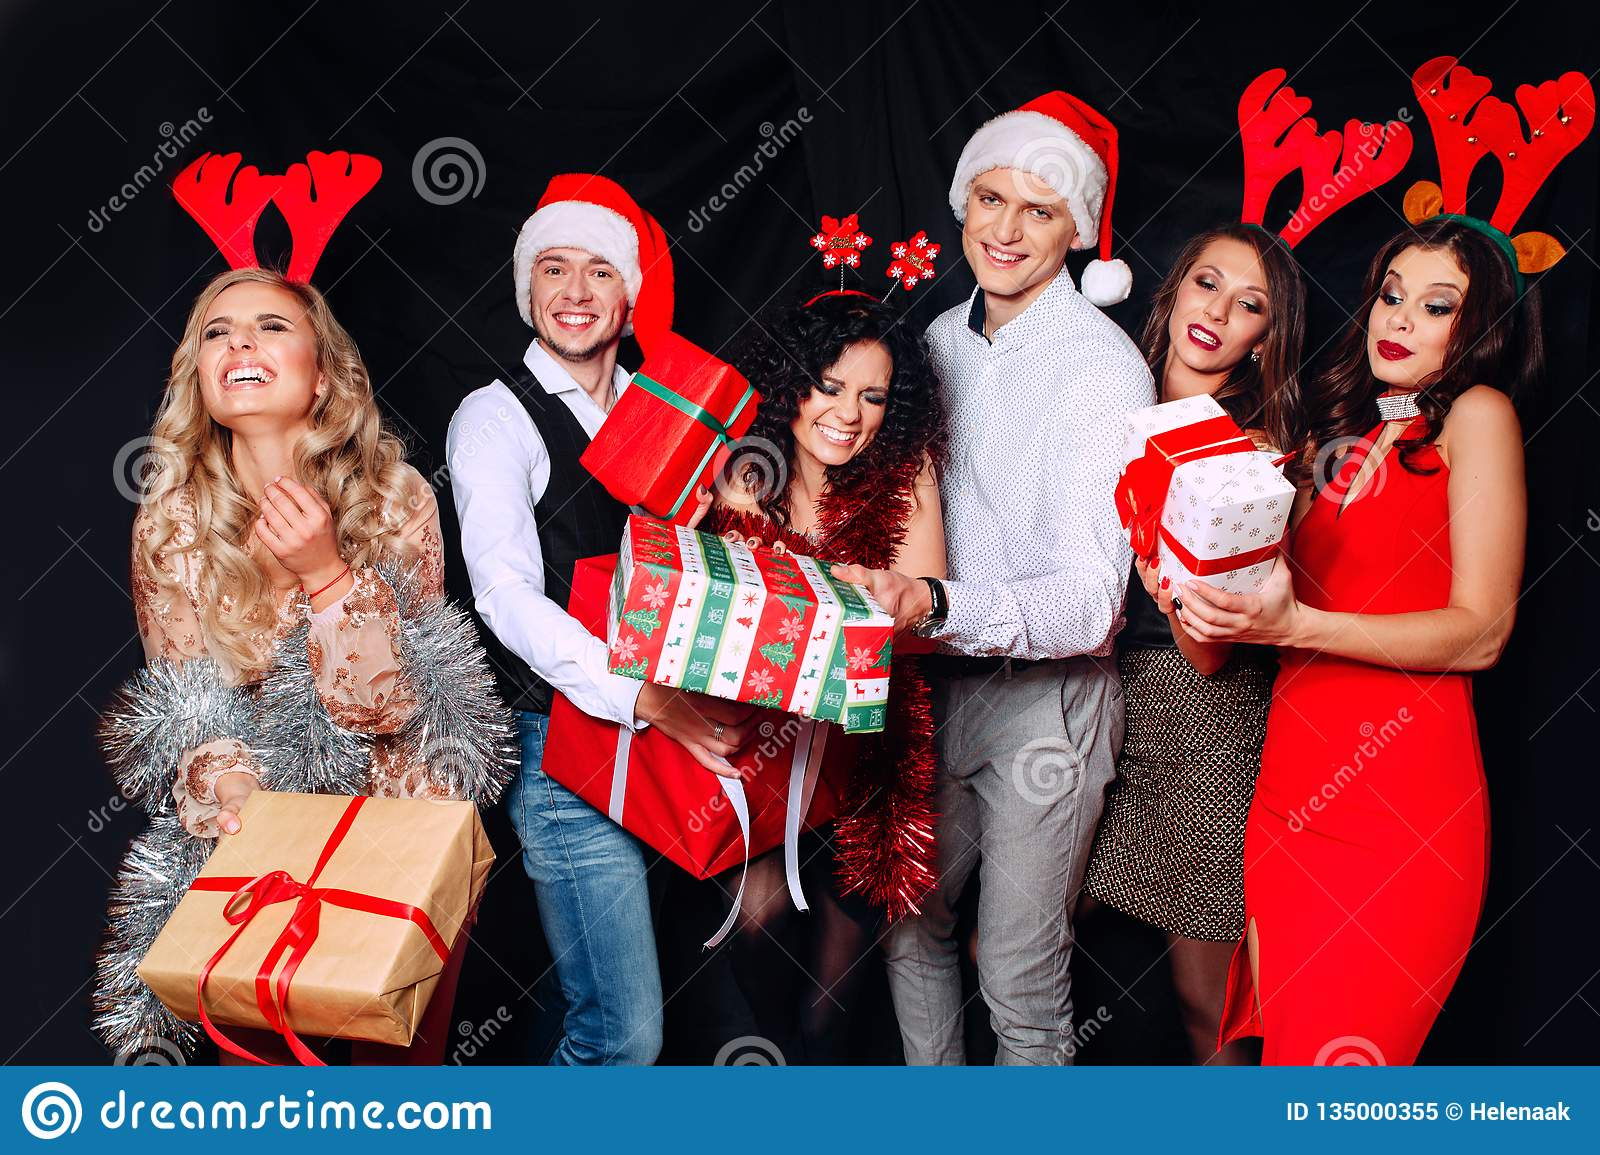 Picture Showing Group Of Friends With Christmas Presents Friends